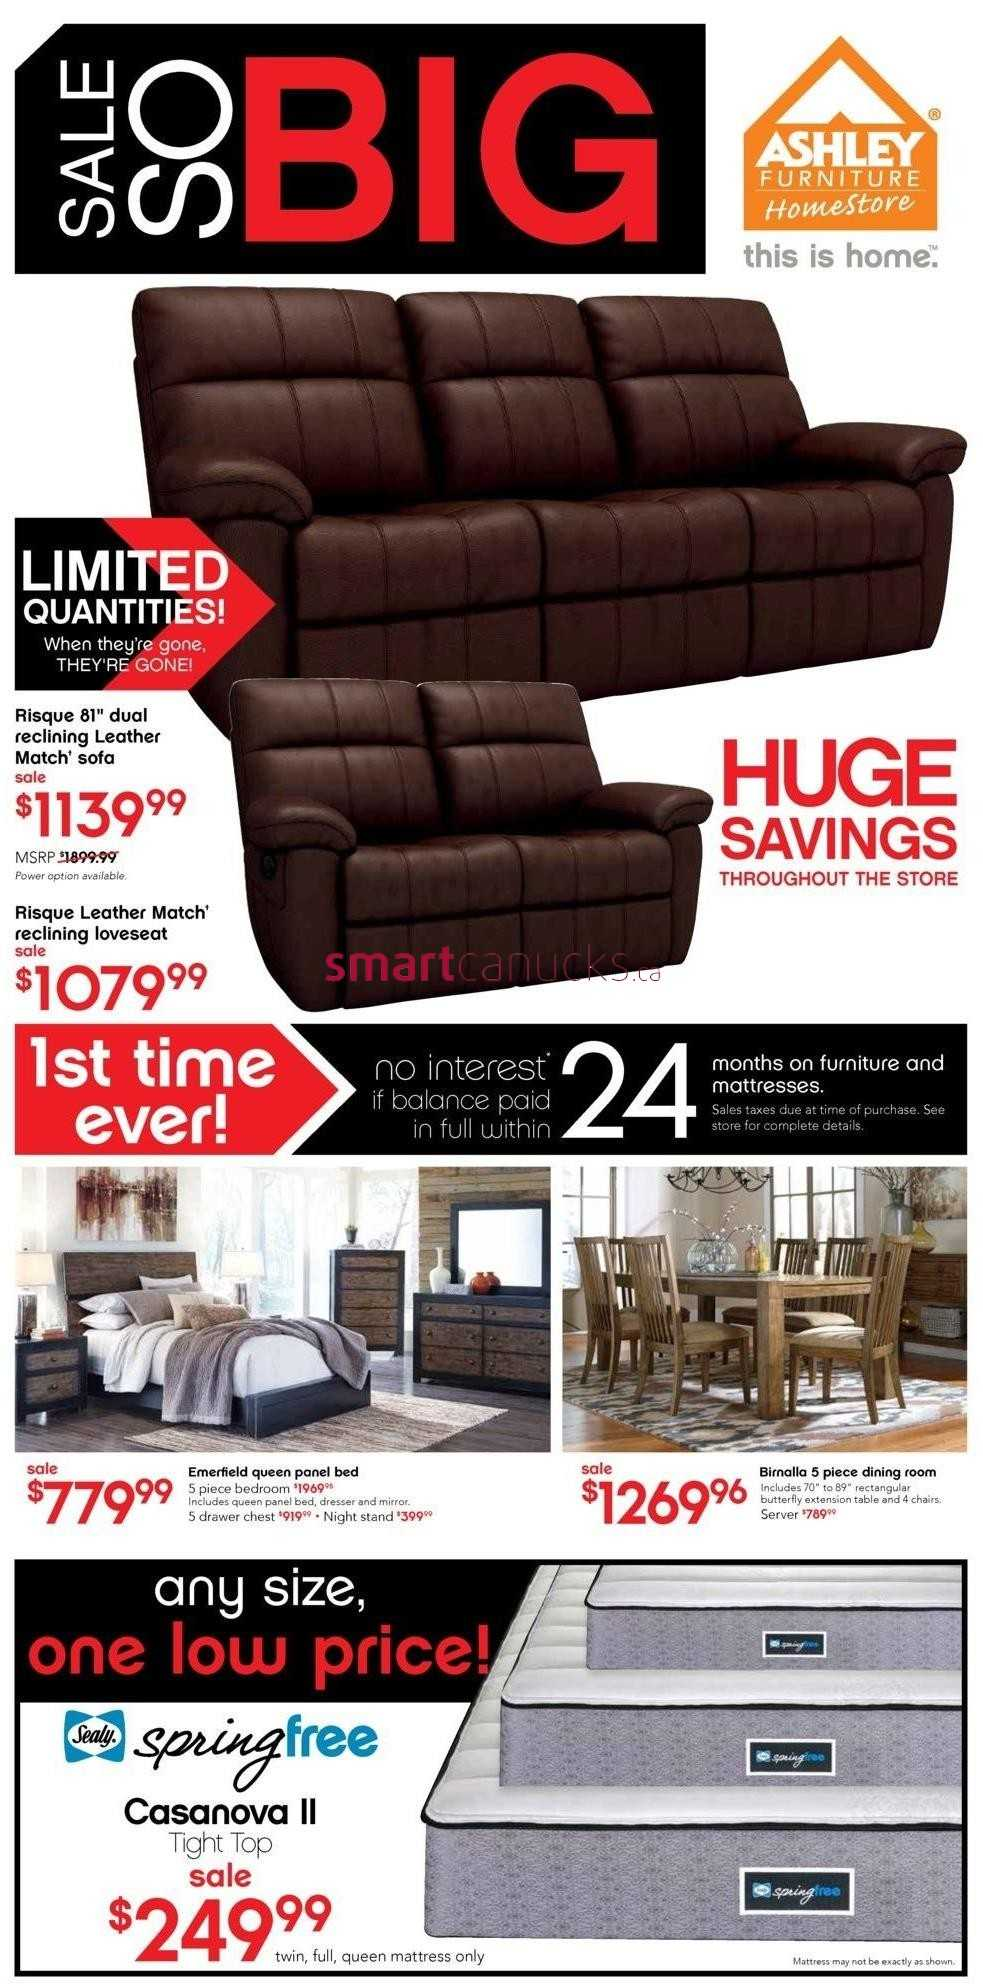 Ashley furniture homestore on flyer august 26 to september 1 Ashley home furniture weekly ad